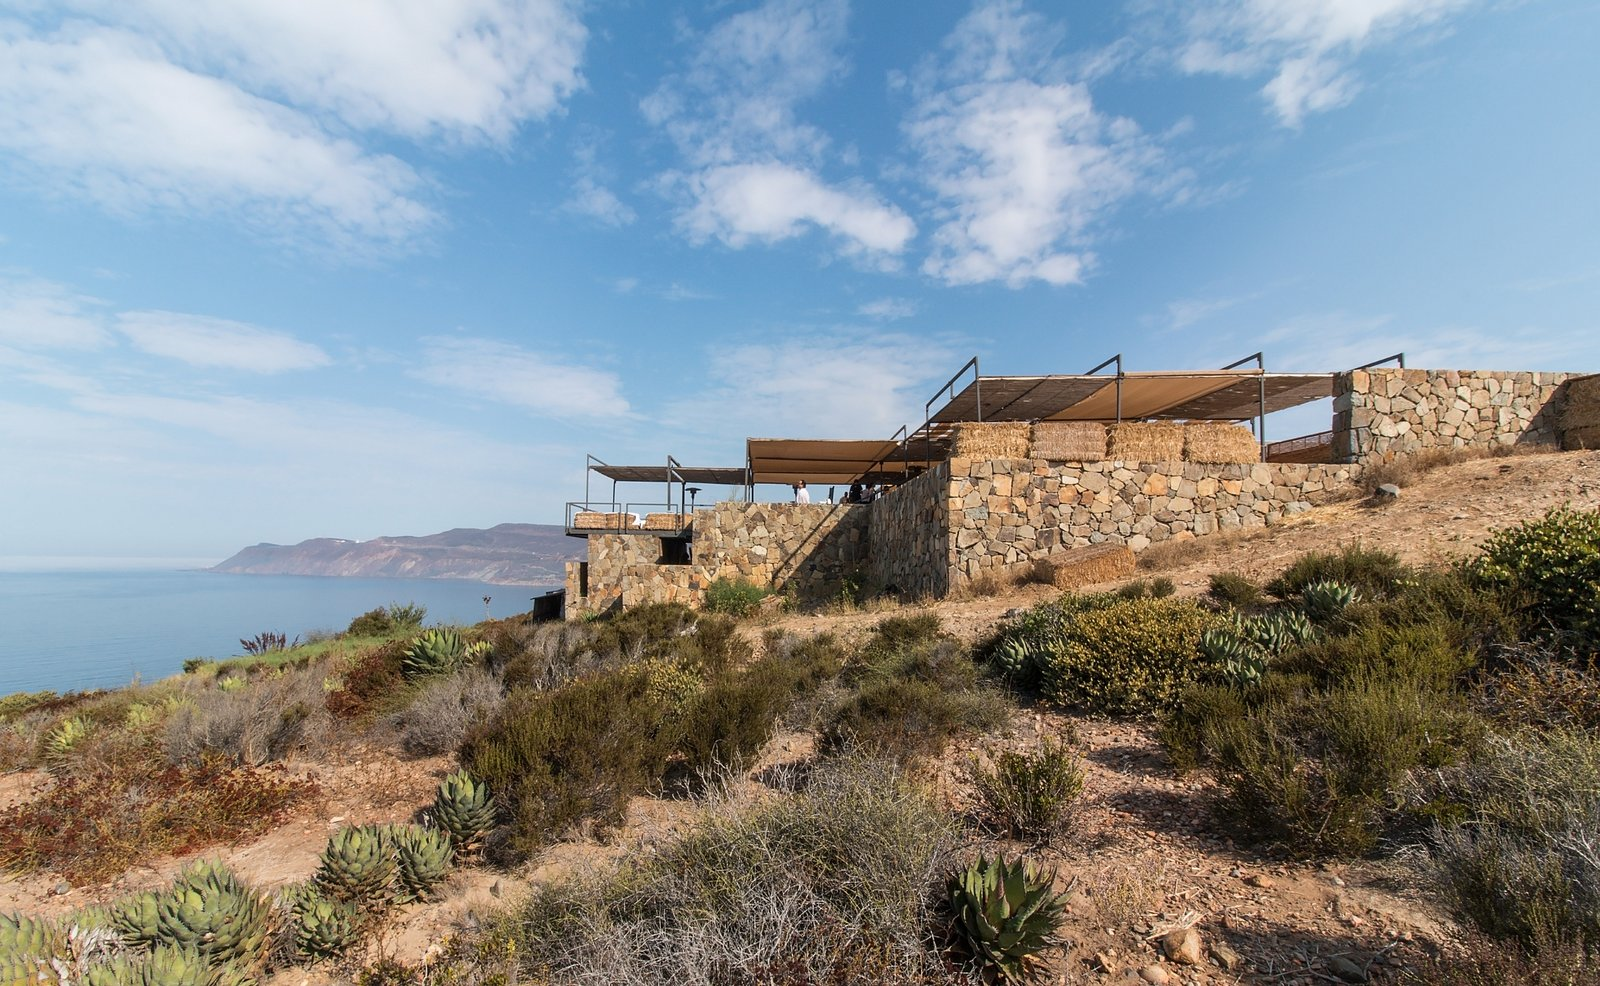 A Powerful New Project in Baja California Involves 44 Renowned Architects - Photo 7 of 8 -